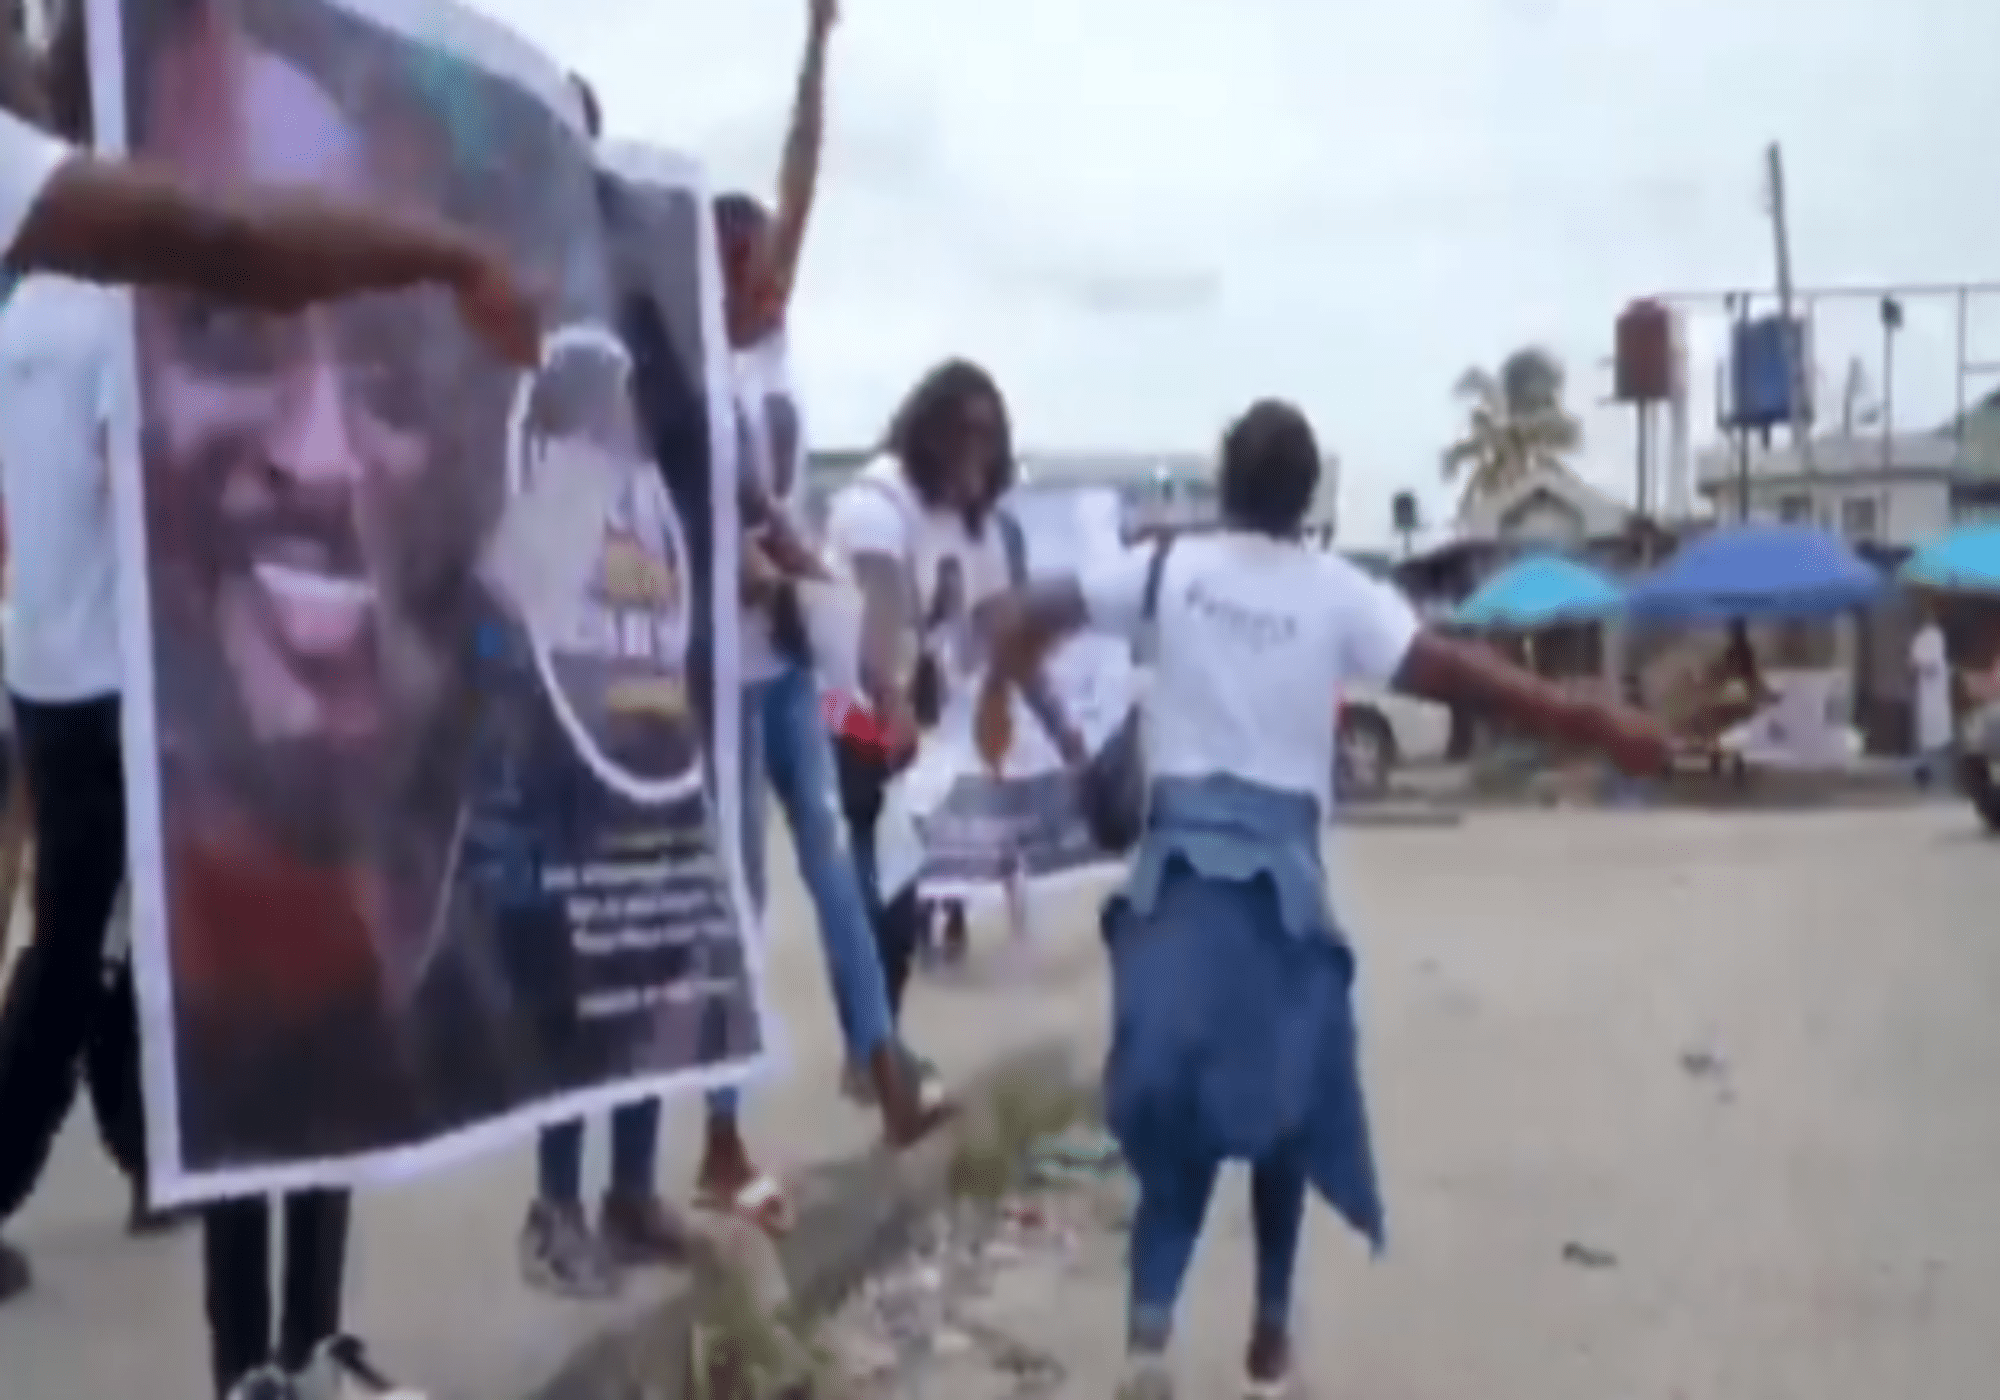 Pere's fans campaign for him